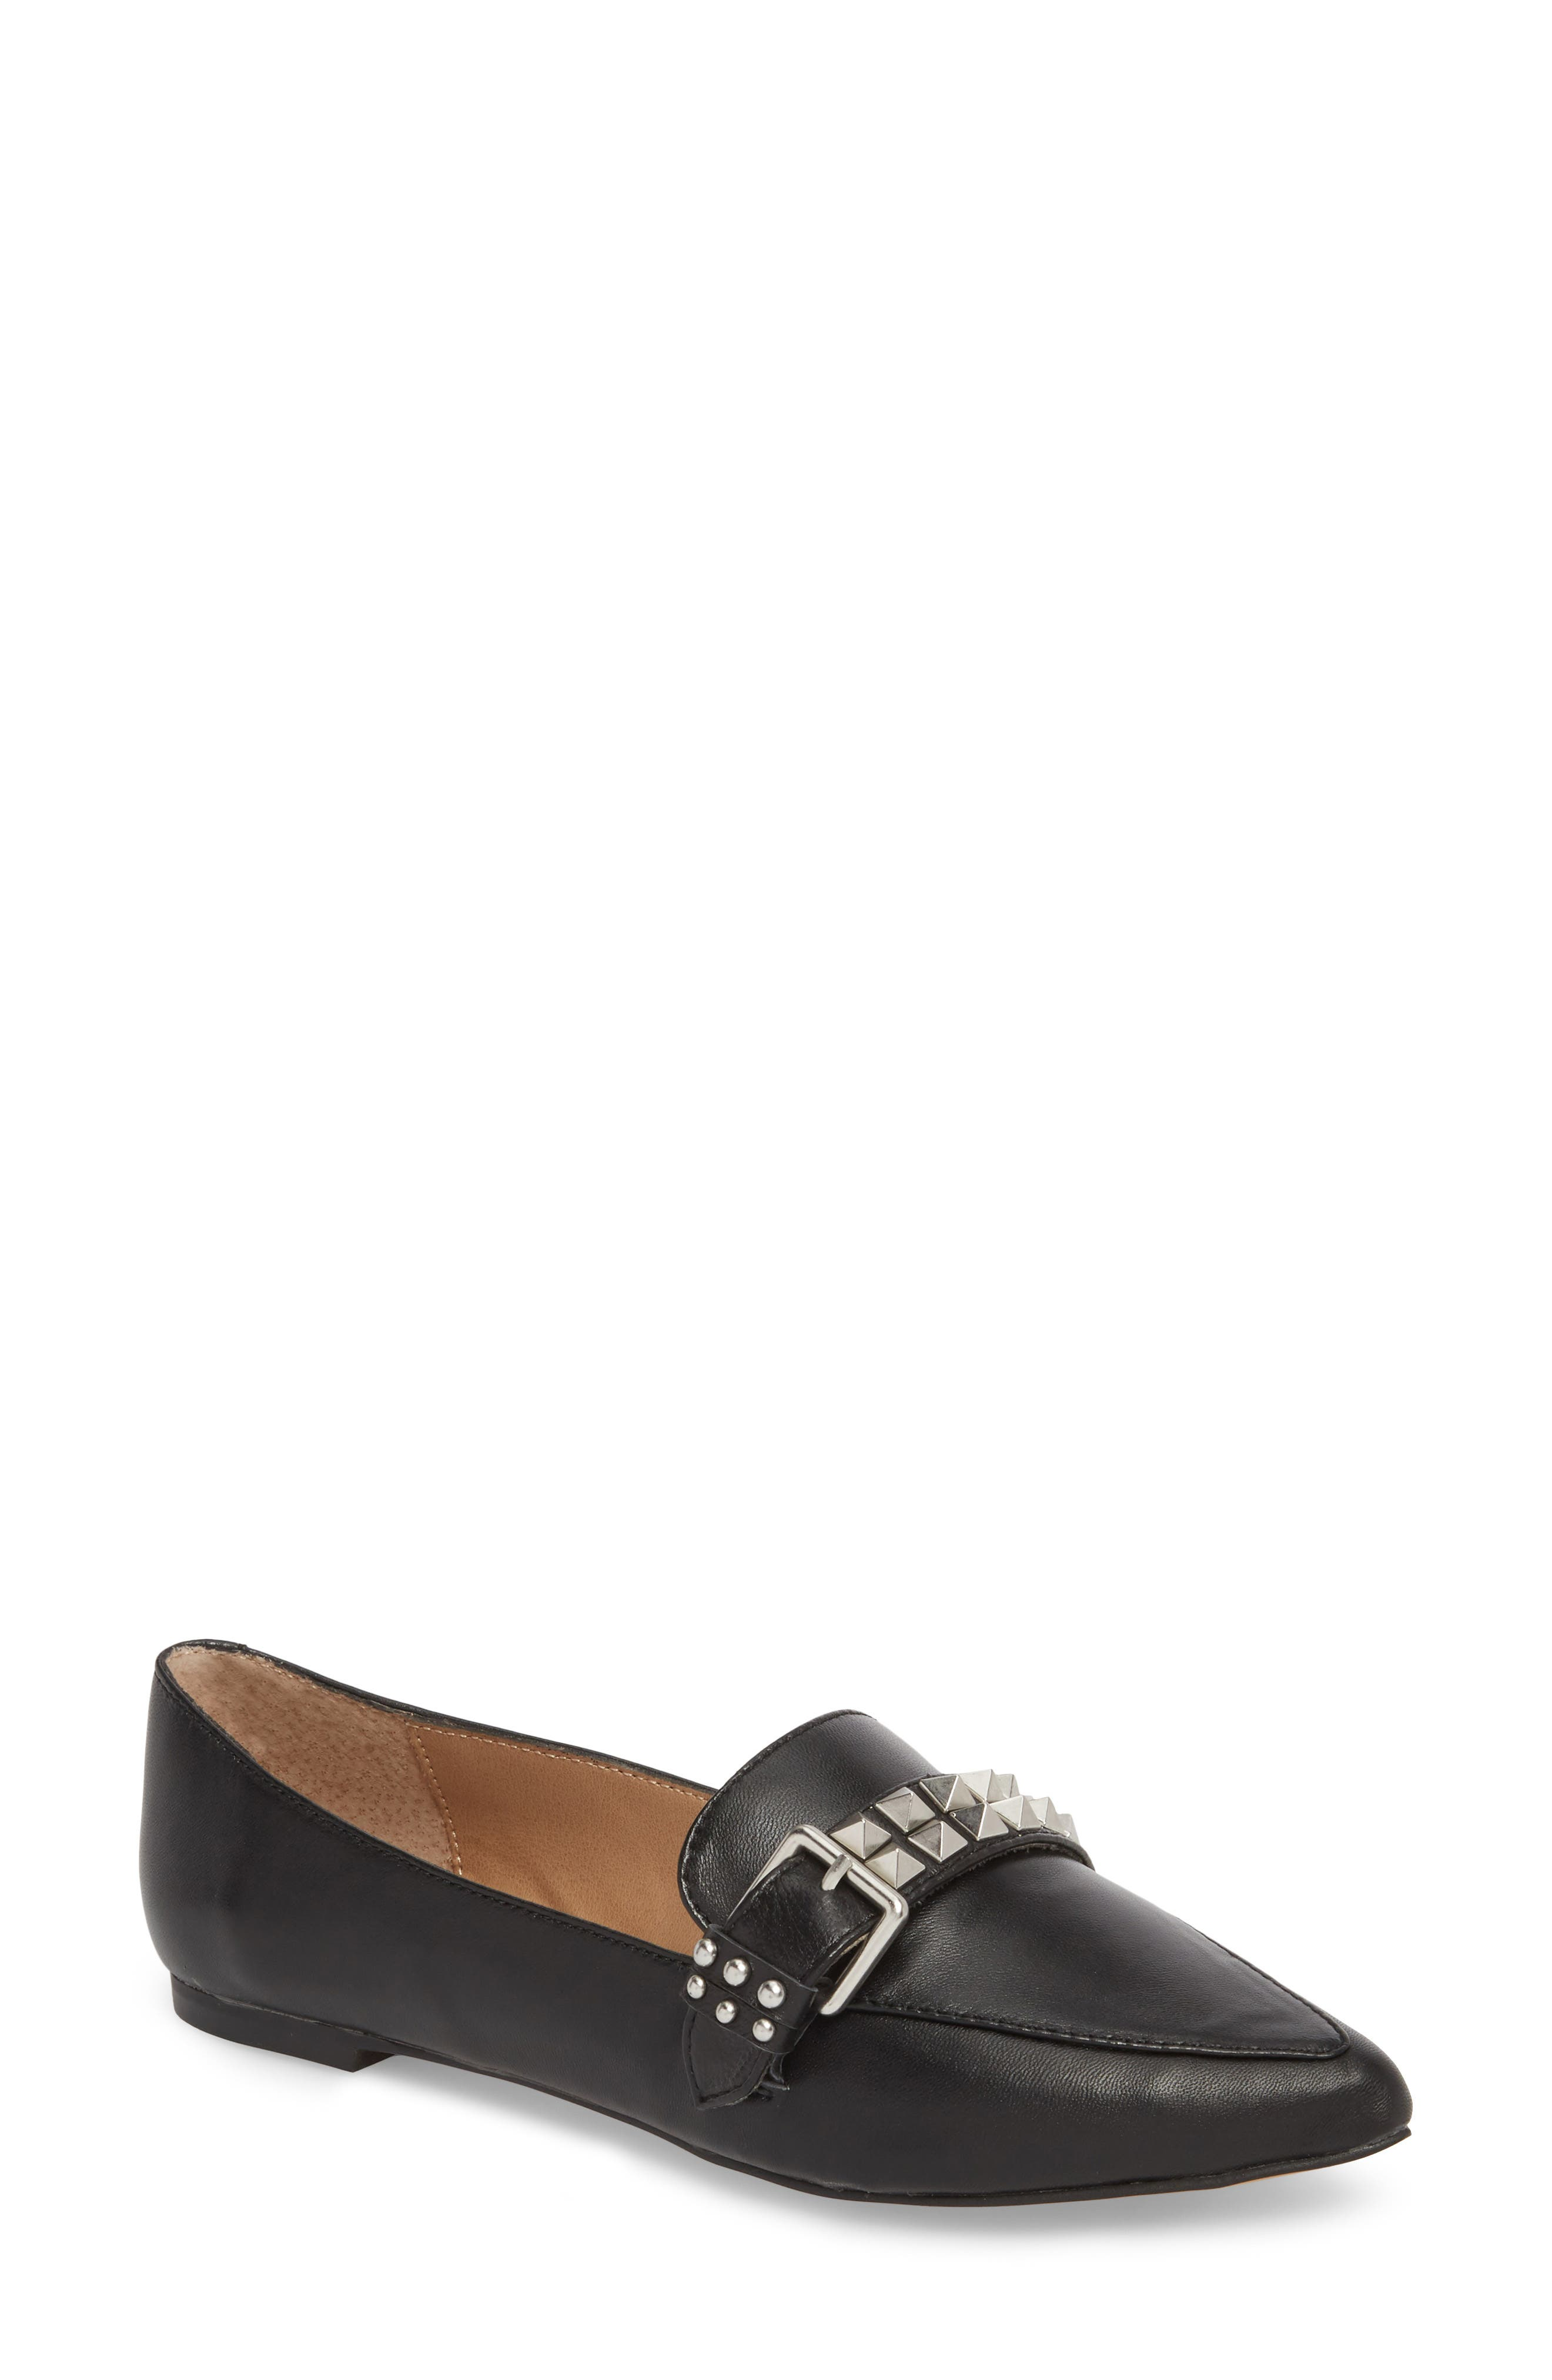 Fire Studded Loafer,                             Main thumbnail 1, color,                             001